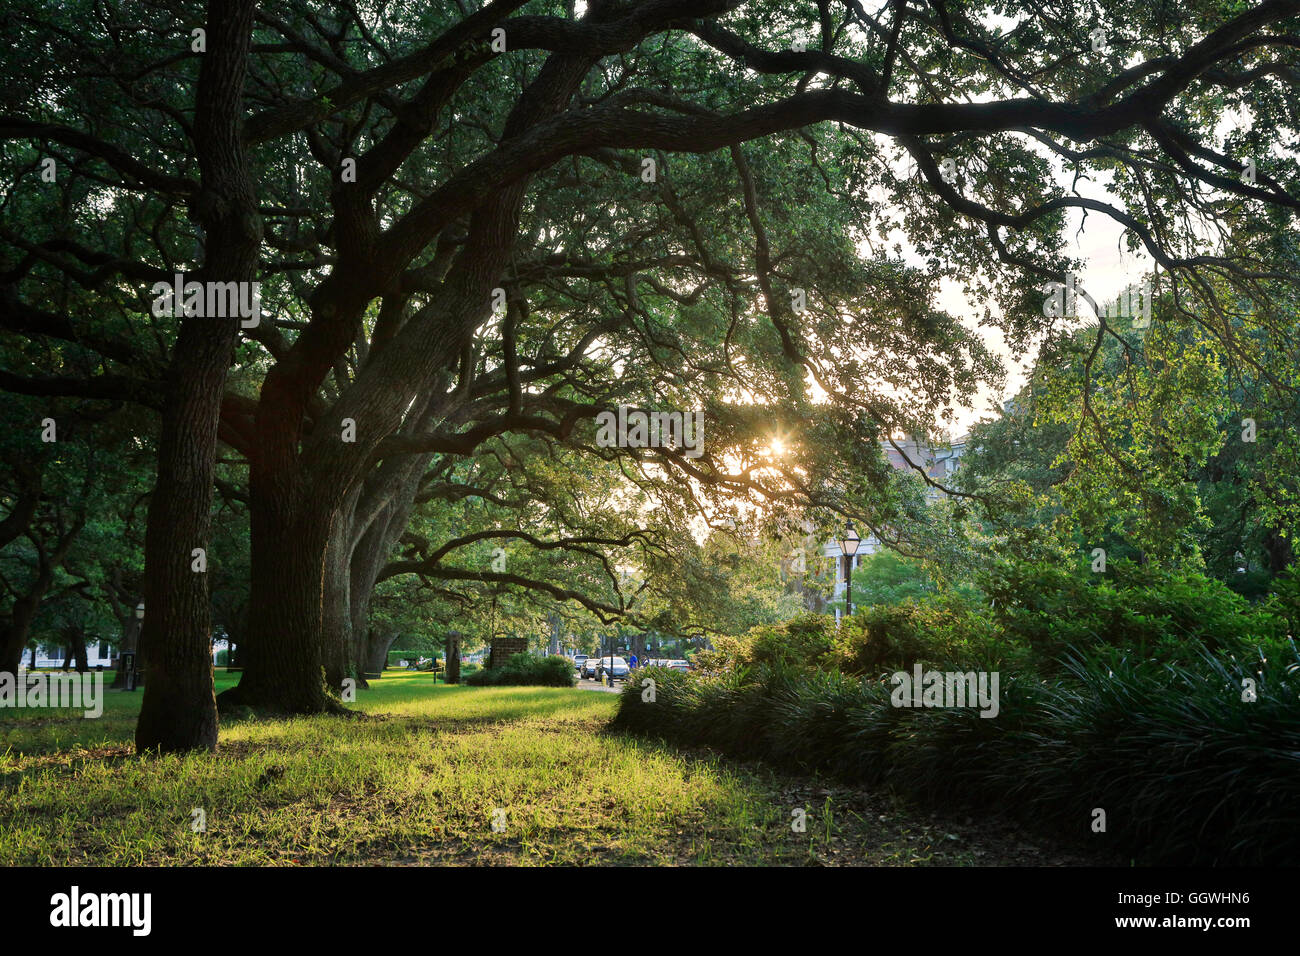 Ancient trees in a park - CHARLESTON, SOUTH CAROLINA - Stock Image